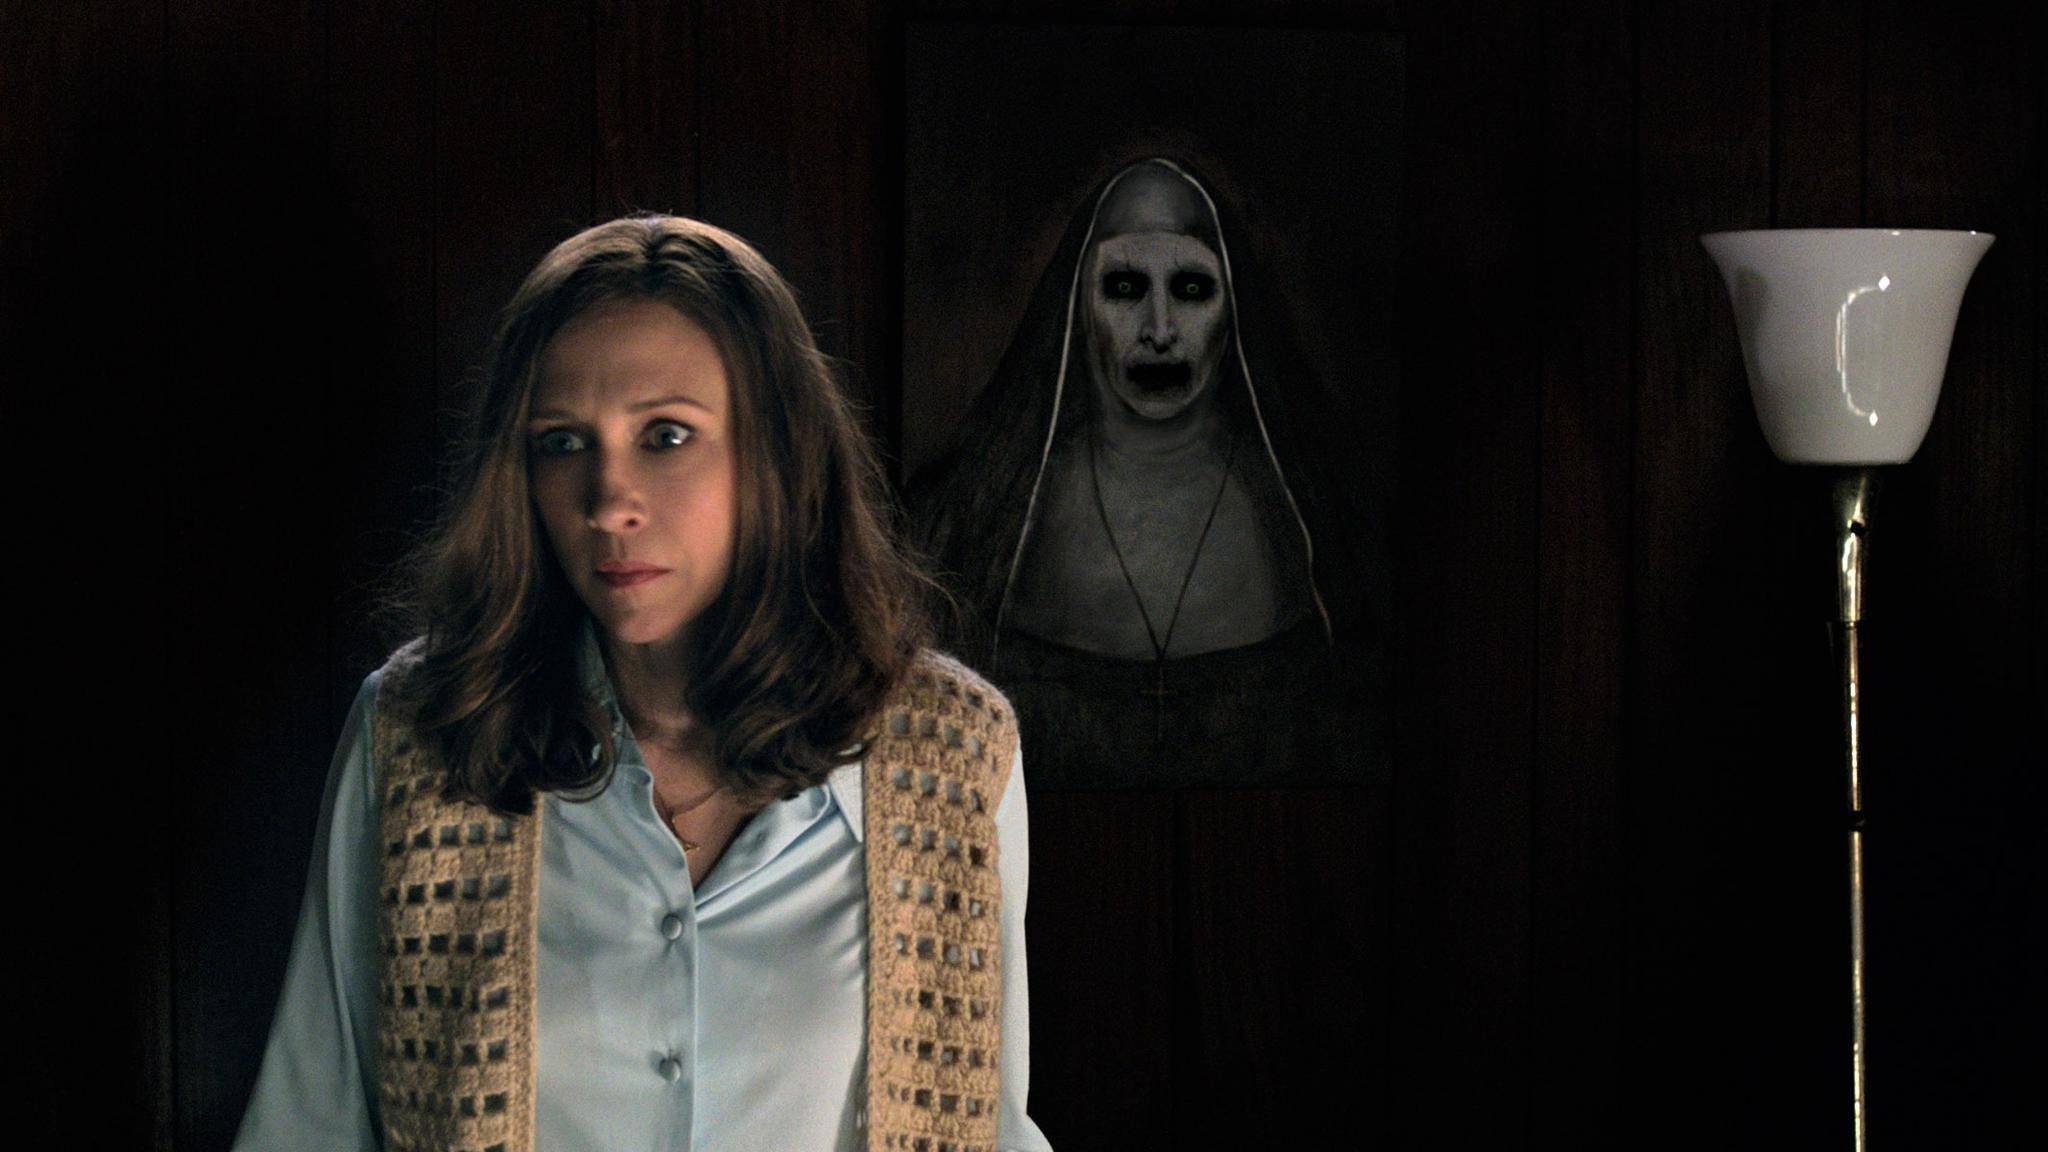 Conjuring 2- The fantastic franchise